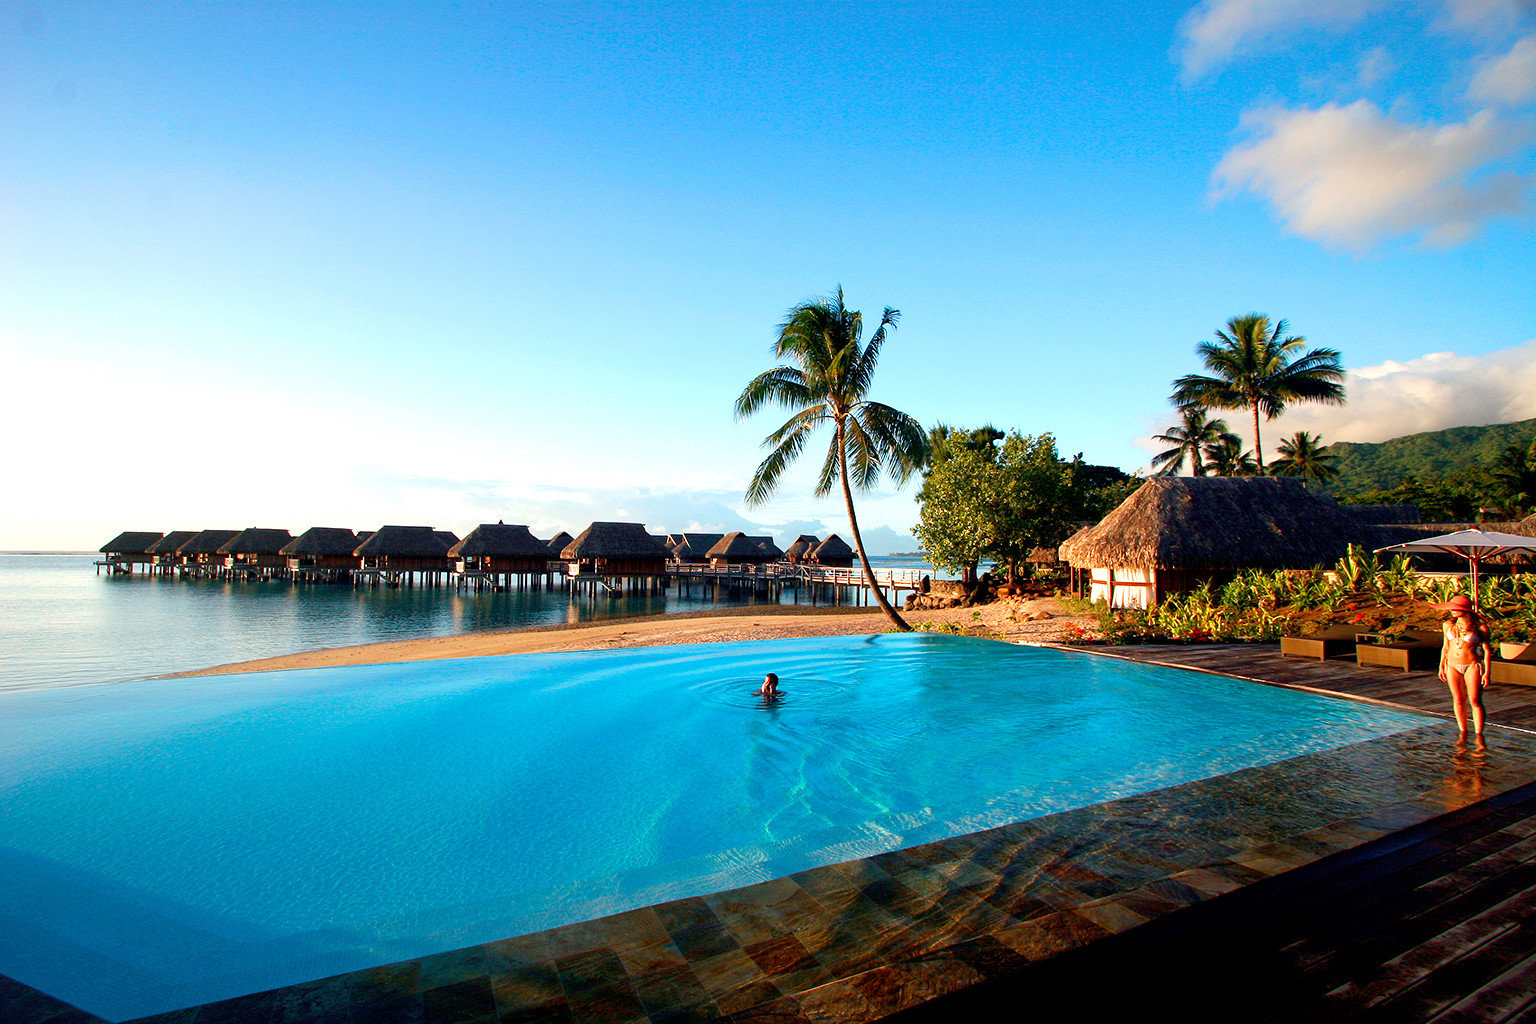 All-Inclusive Resorts Boutique Hotels Hotels Luxury Overwater Bungalow Play Pool Resort Romance Scenic views Trip Ideas sky water outdoor Boat swimming pool leisure scene vacation Sea Ocean estate Beach bay caribbean Lagoon arecales blue shore swimming Island